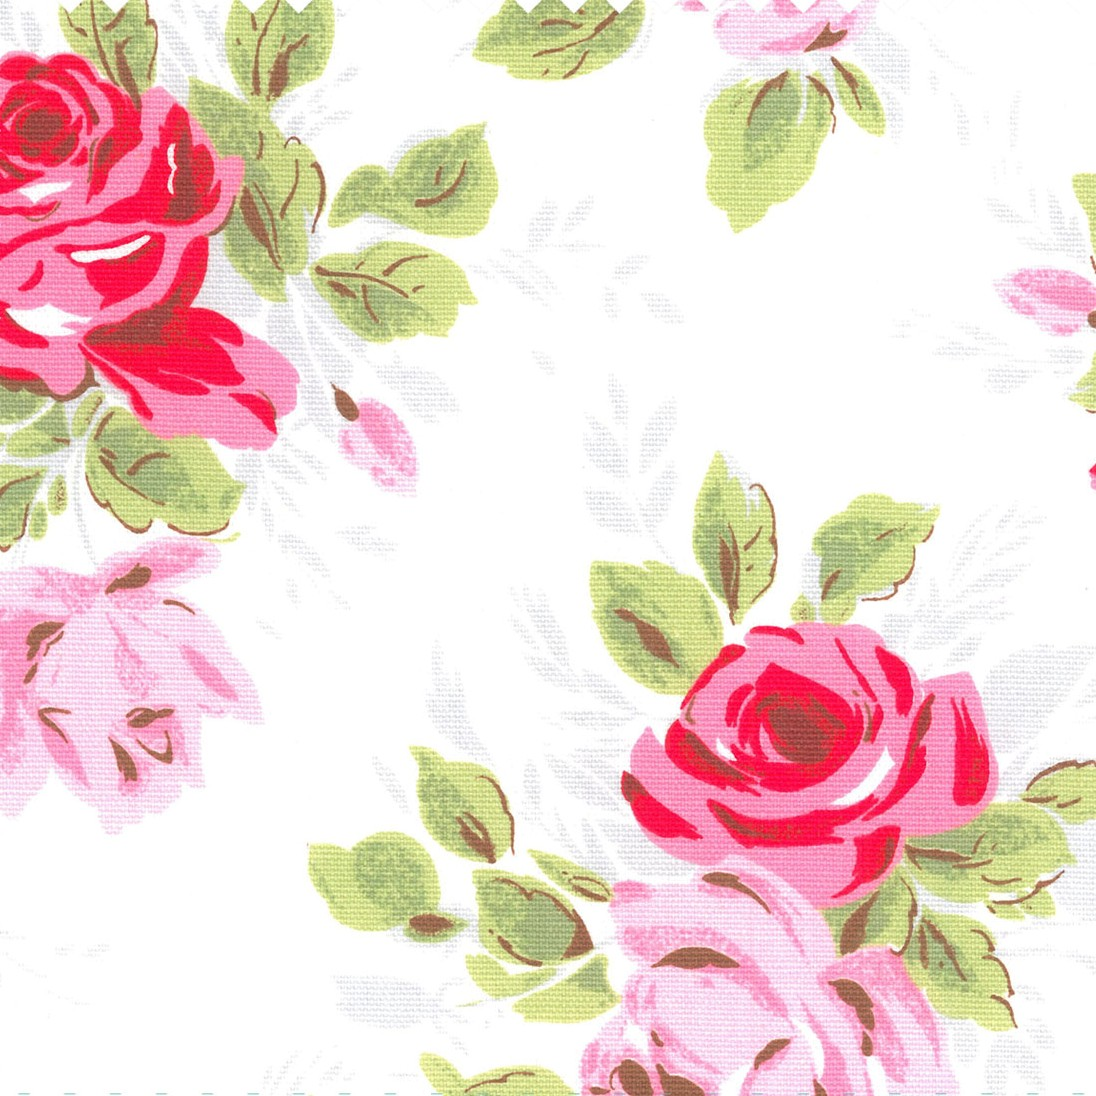 Rose Cotton Duck - White - Cath Kidston white cotton fabric with large pink and red flower design